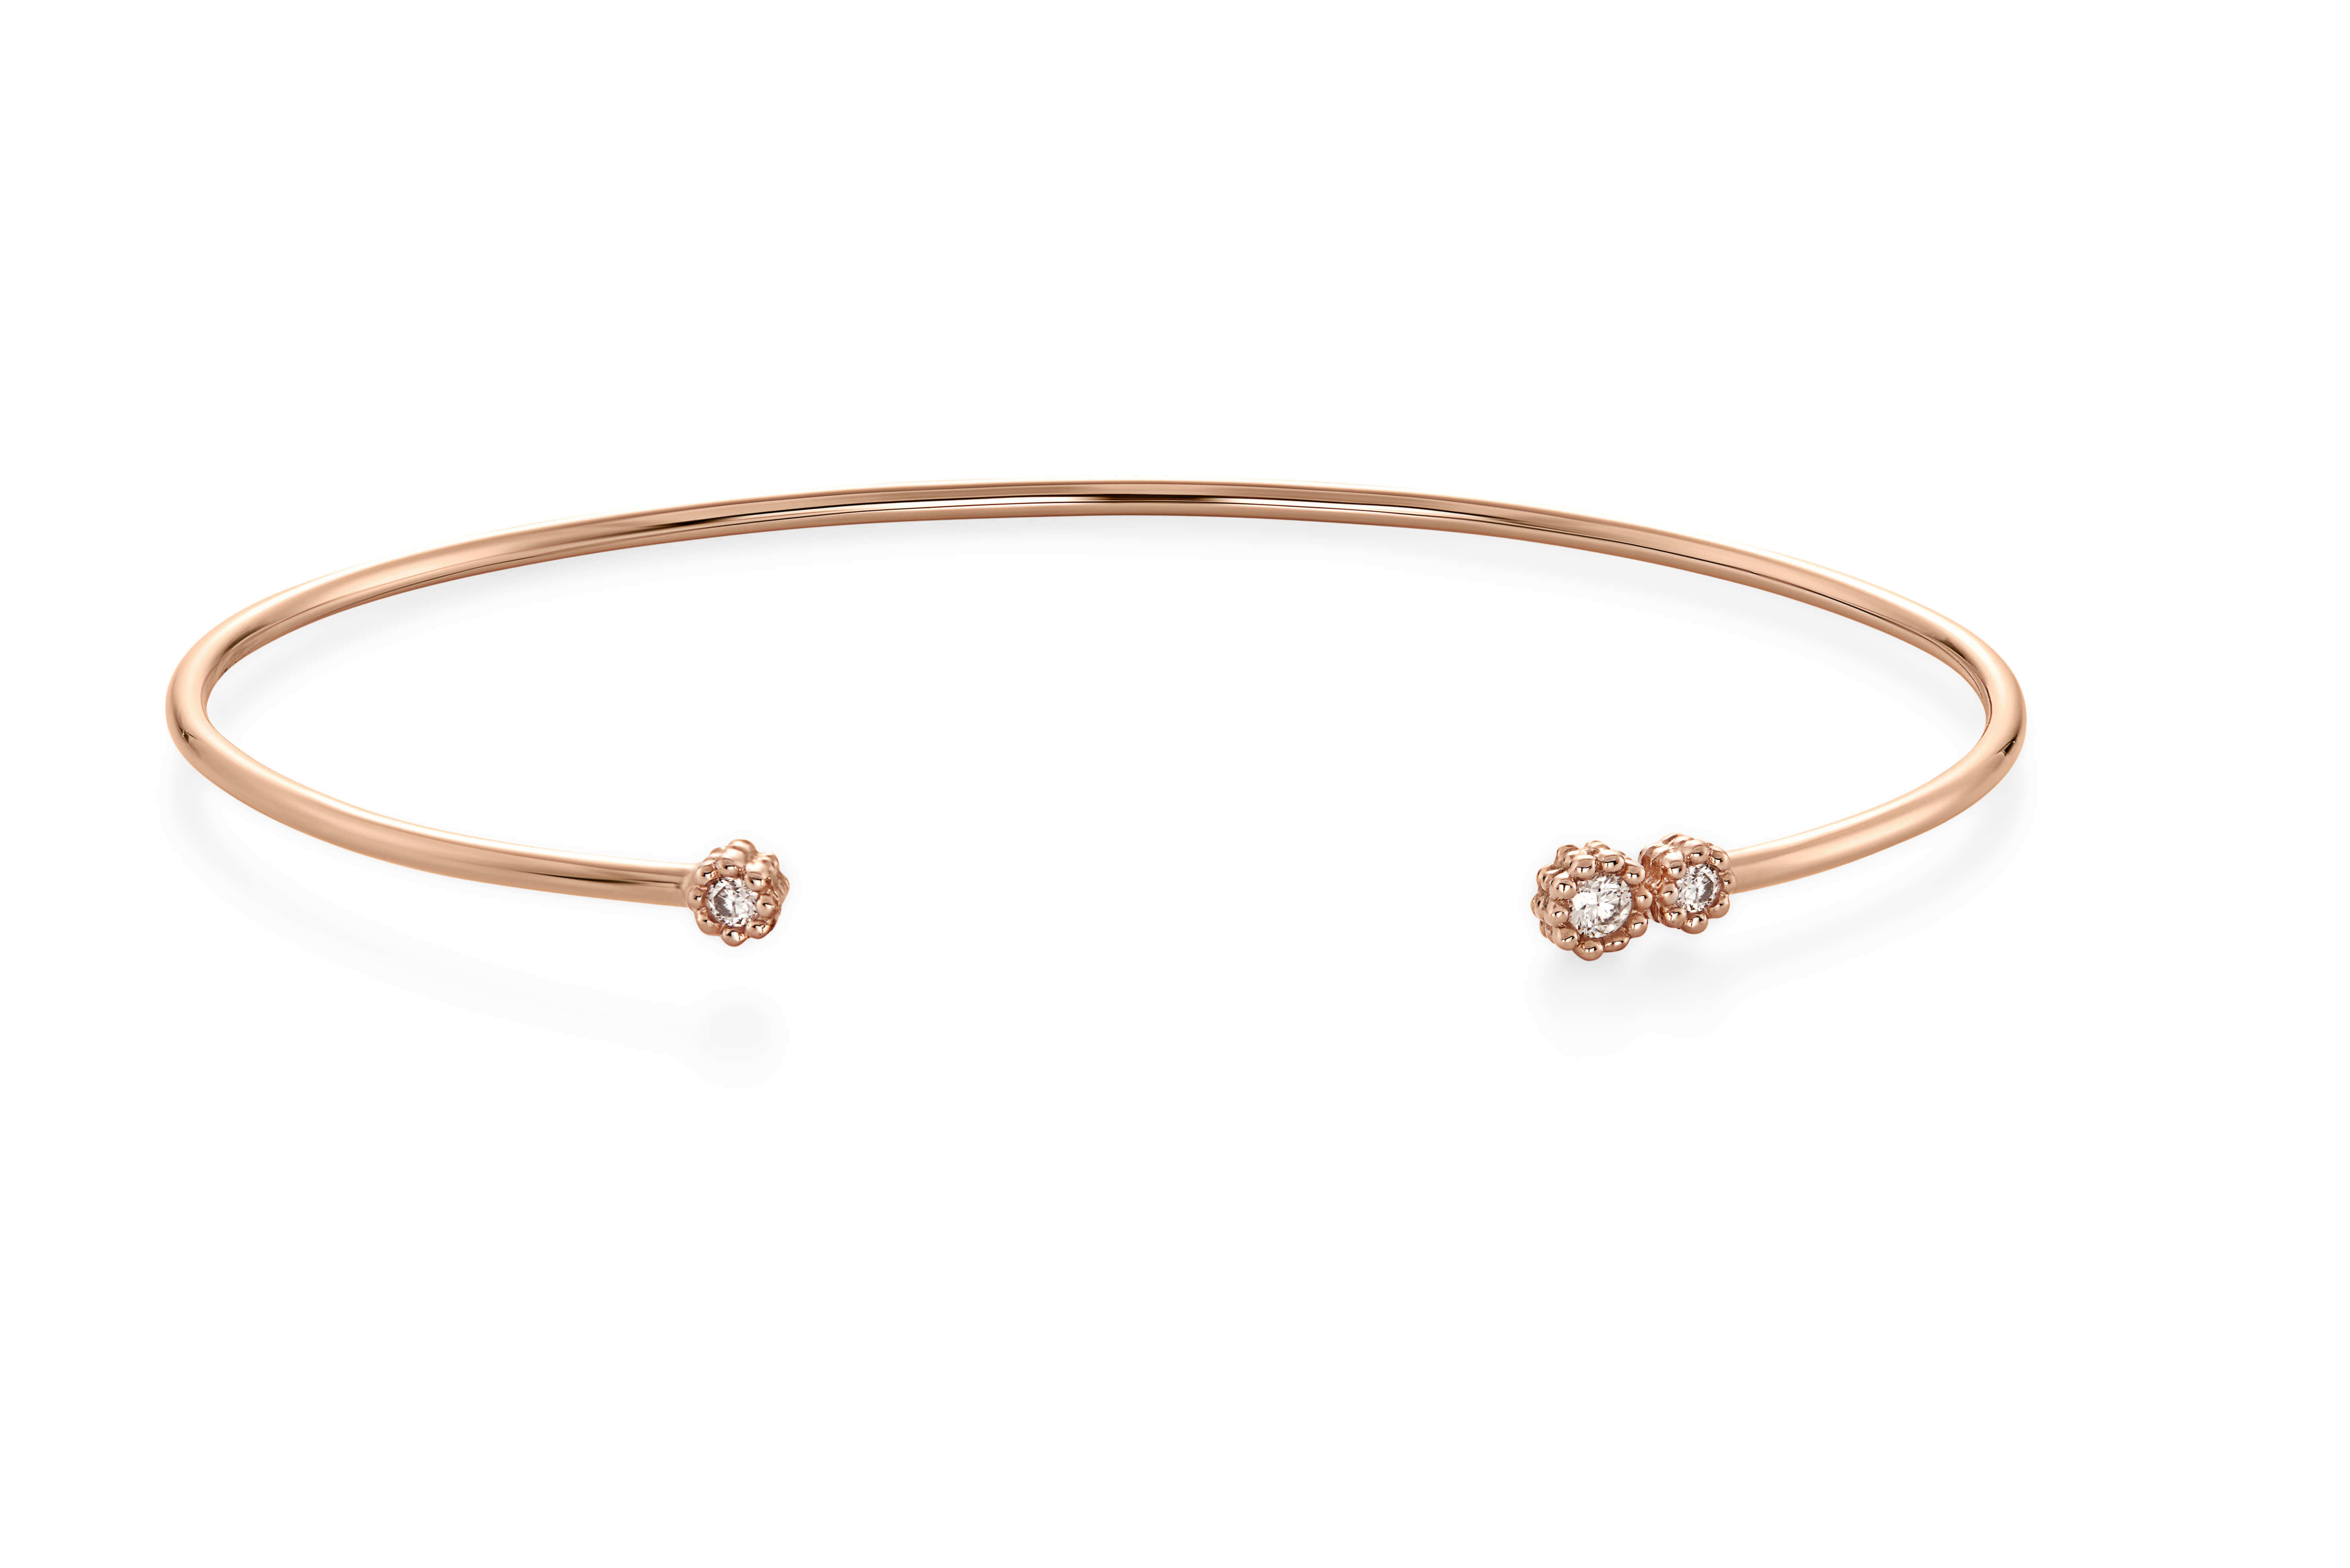 MyCollection_H.Stern_-_bracelet_in_18K_rose_gold_with_diamonds_accents_(P0B_209334)